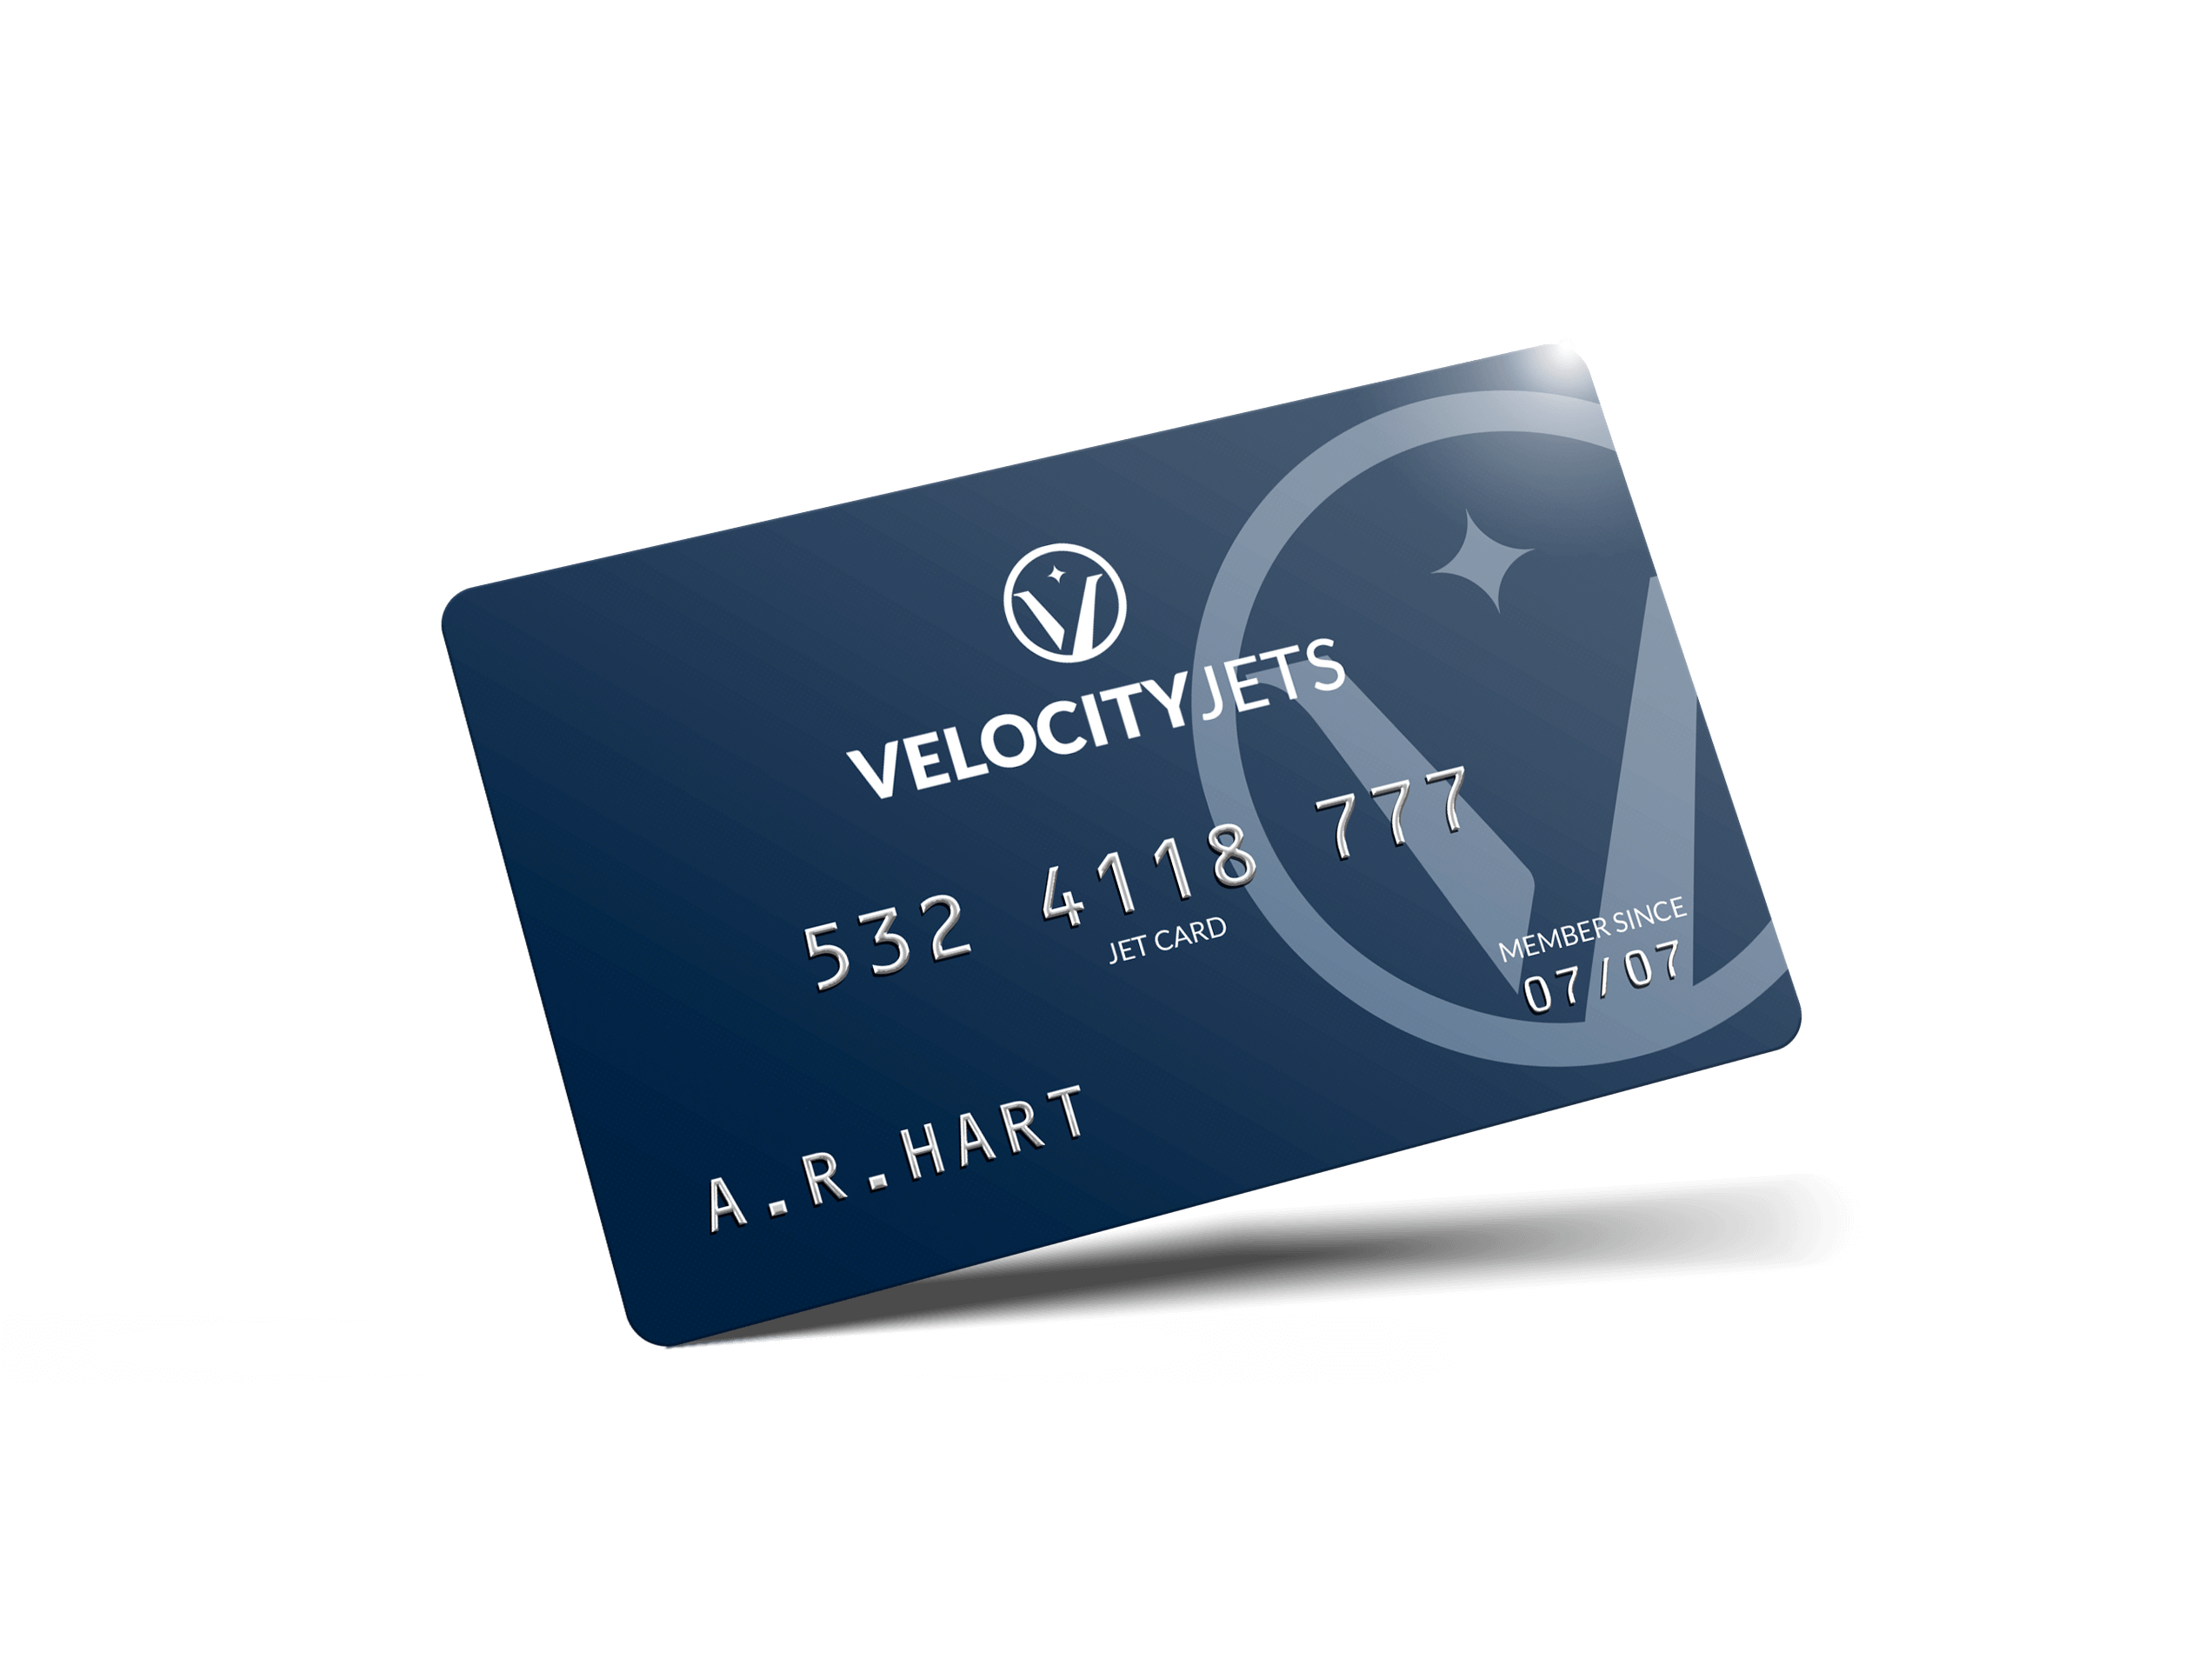 Jet Card by VelocityJets